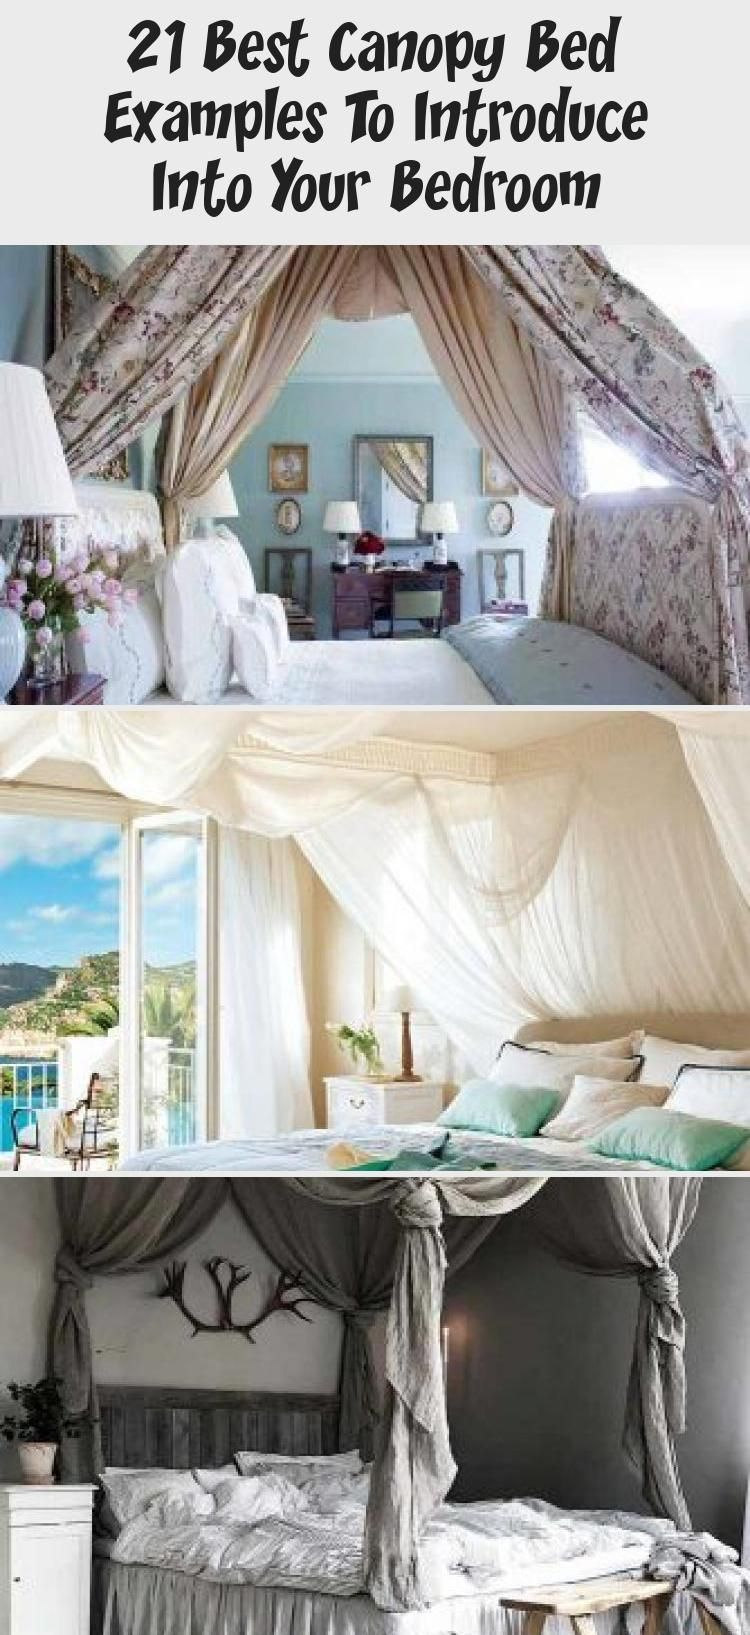 Boho Bedroom Design With Rustic Bed #plants Best canopy ... on Modern Boho Bed Frame  id=57073